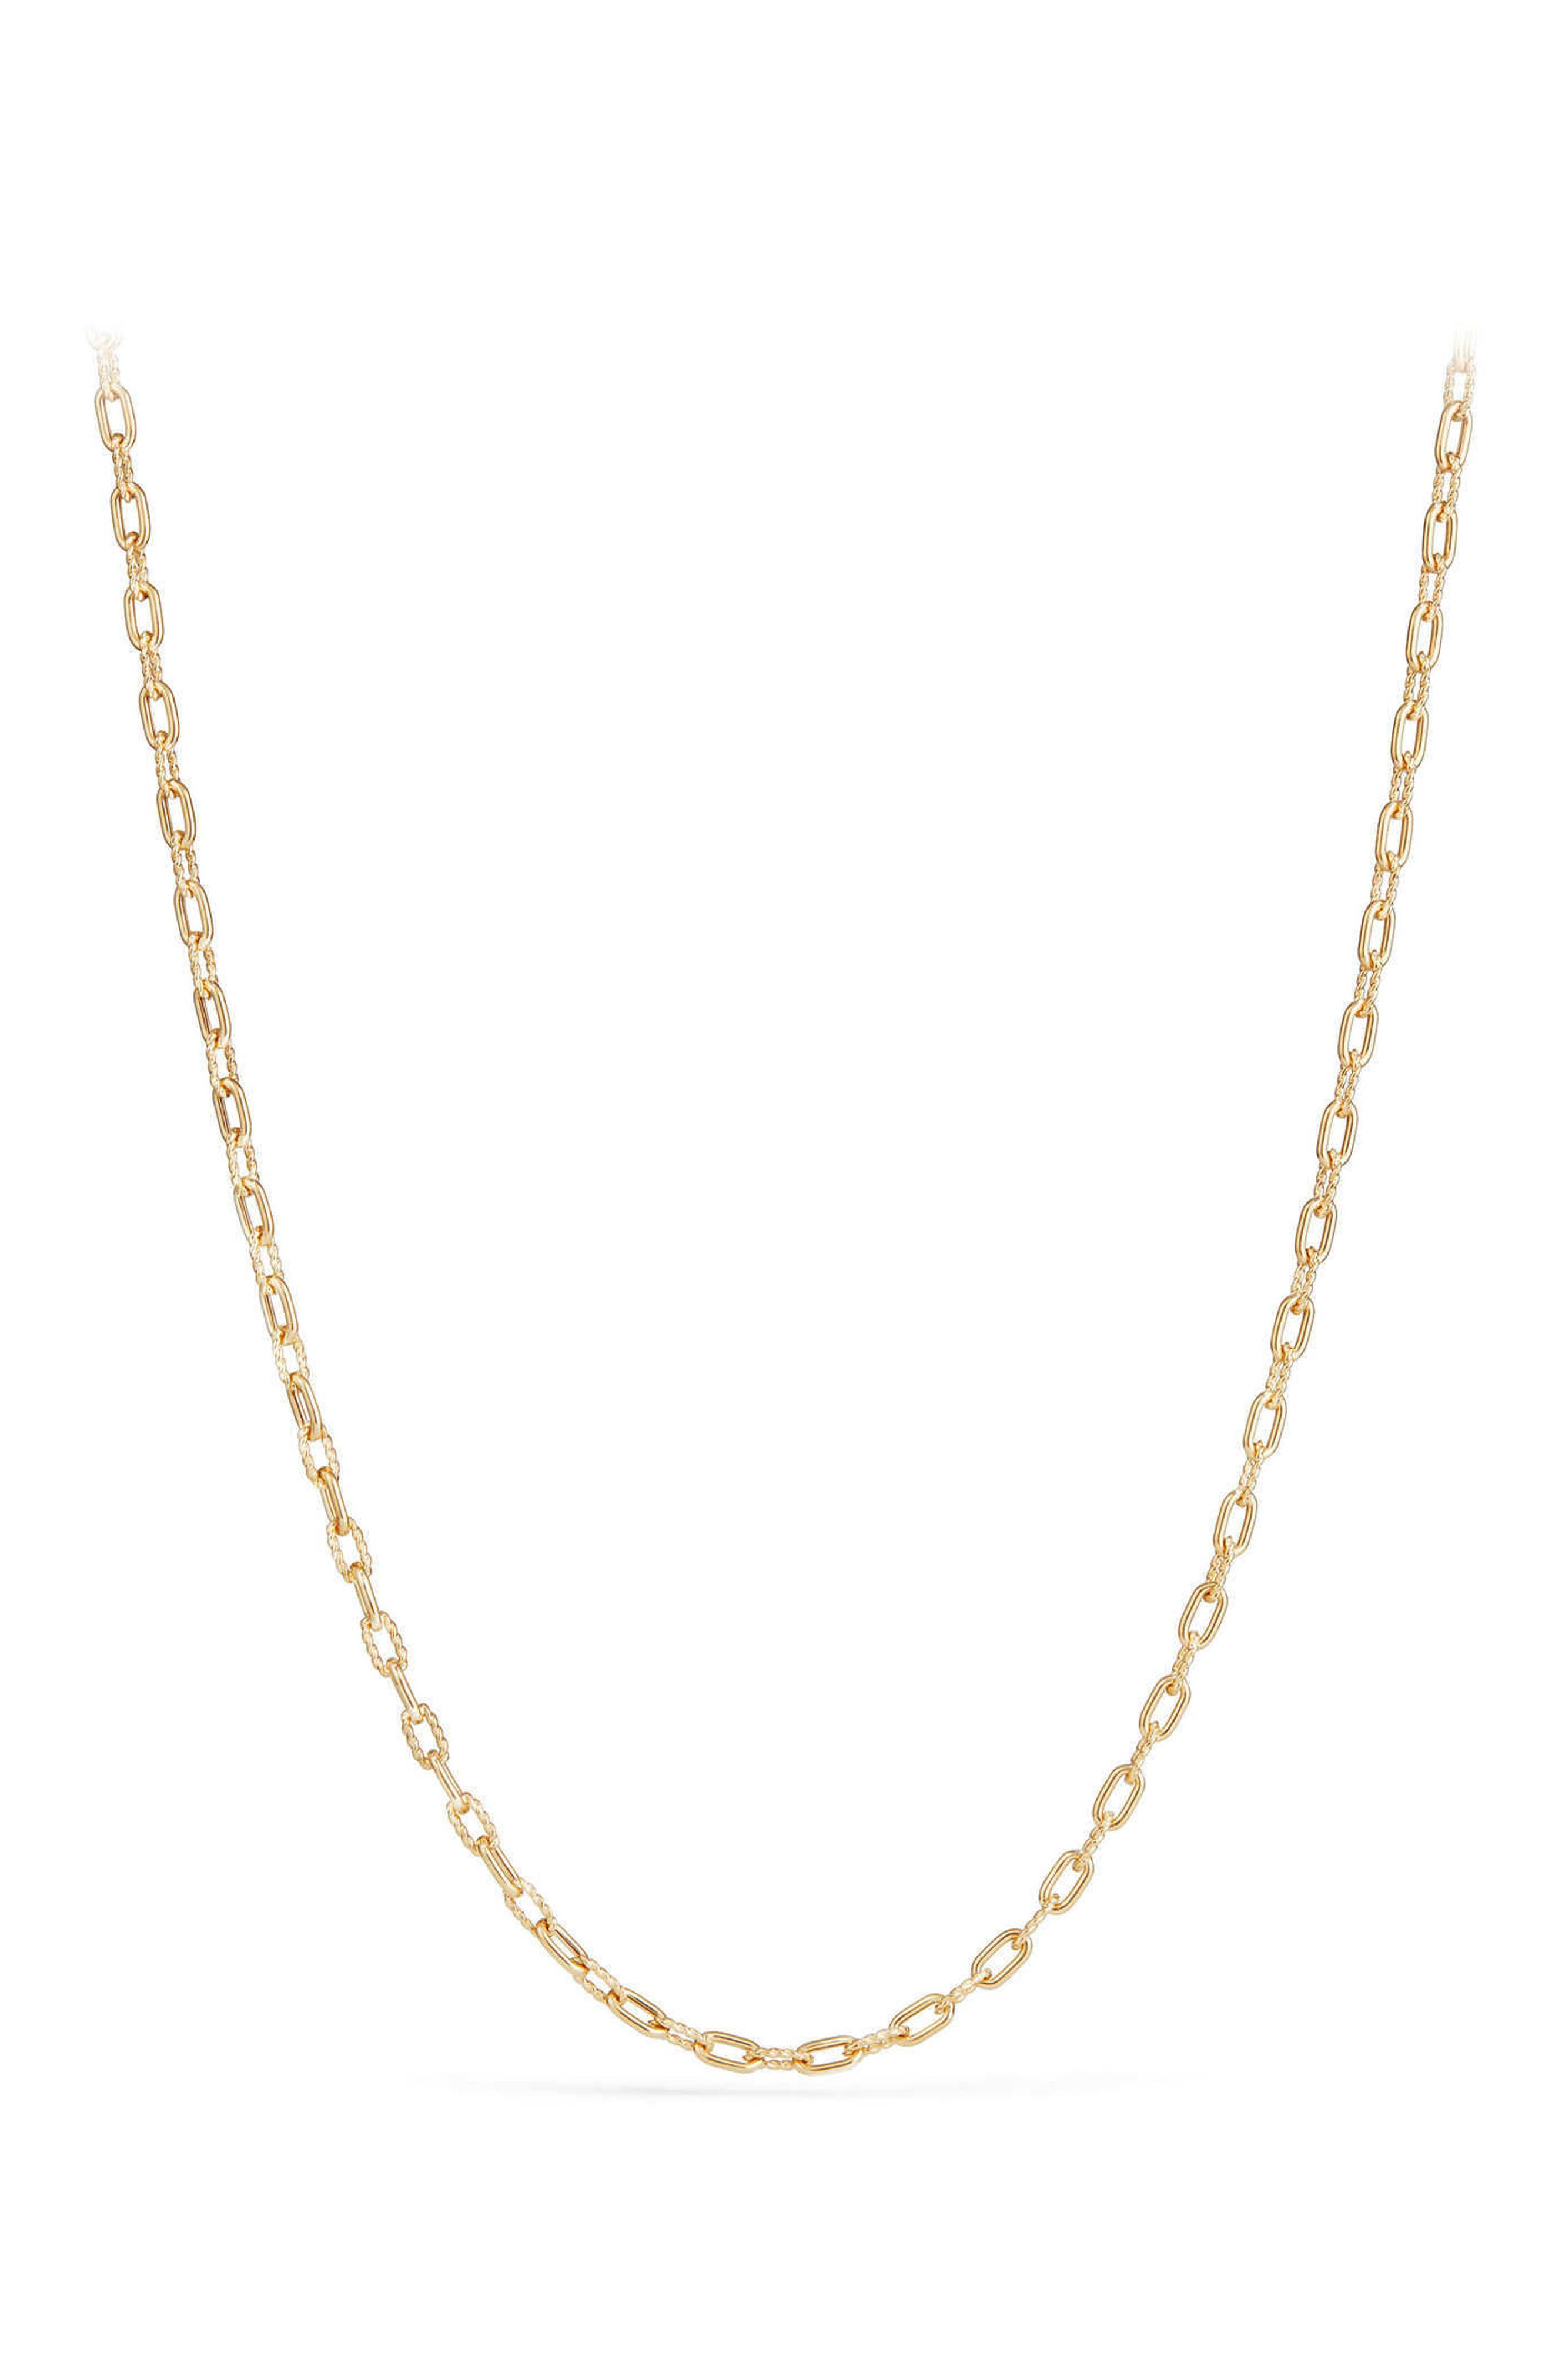 DY Madison Thin Chain Necklace in 18K Gold,                             Main thumbnail 1, color,                             GOLD